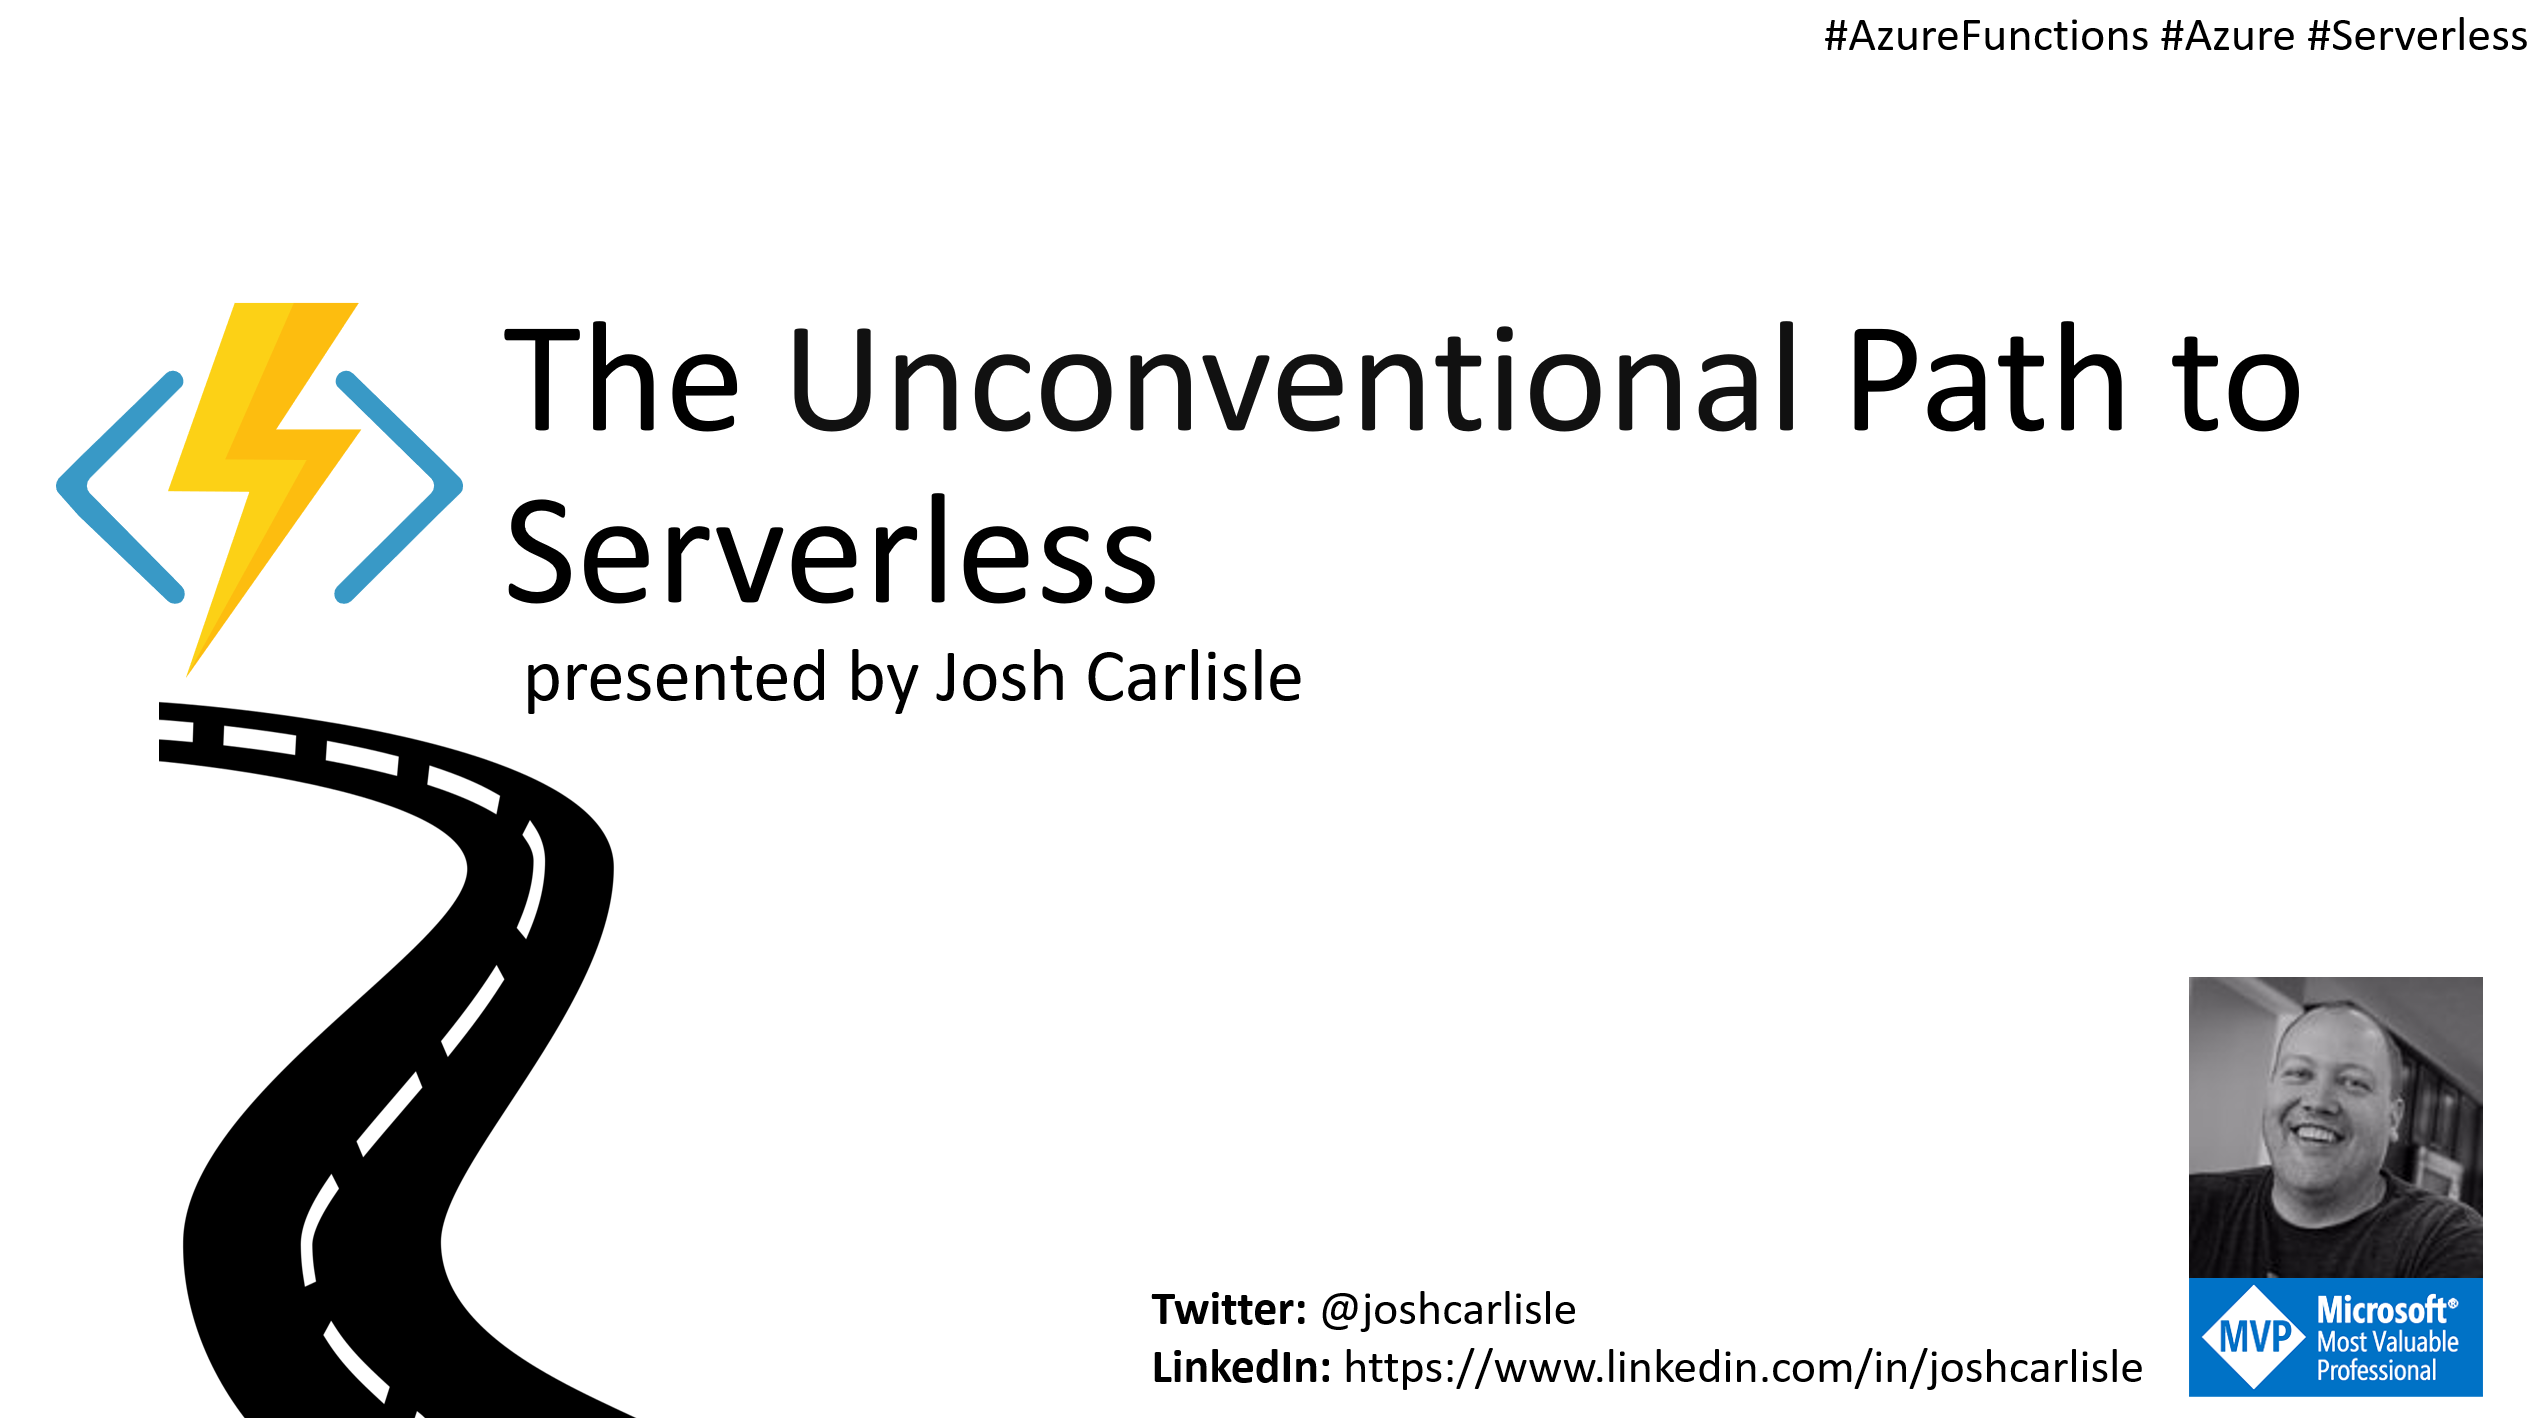 Charlotte Azure Meetup - The Unconventional Path to Serverless